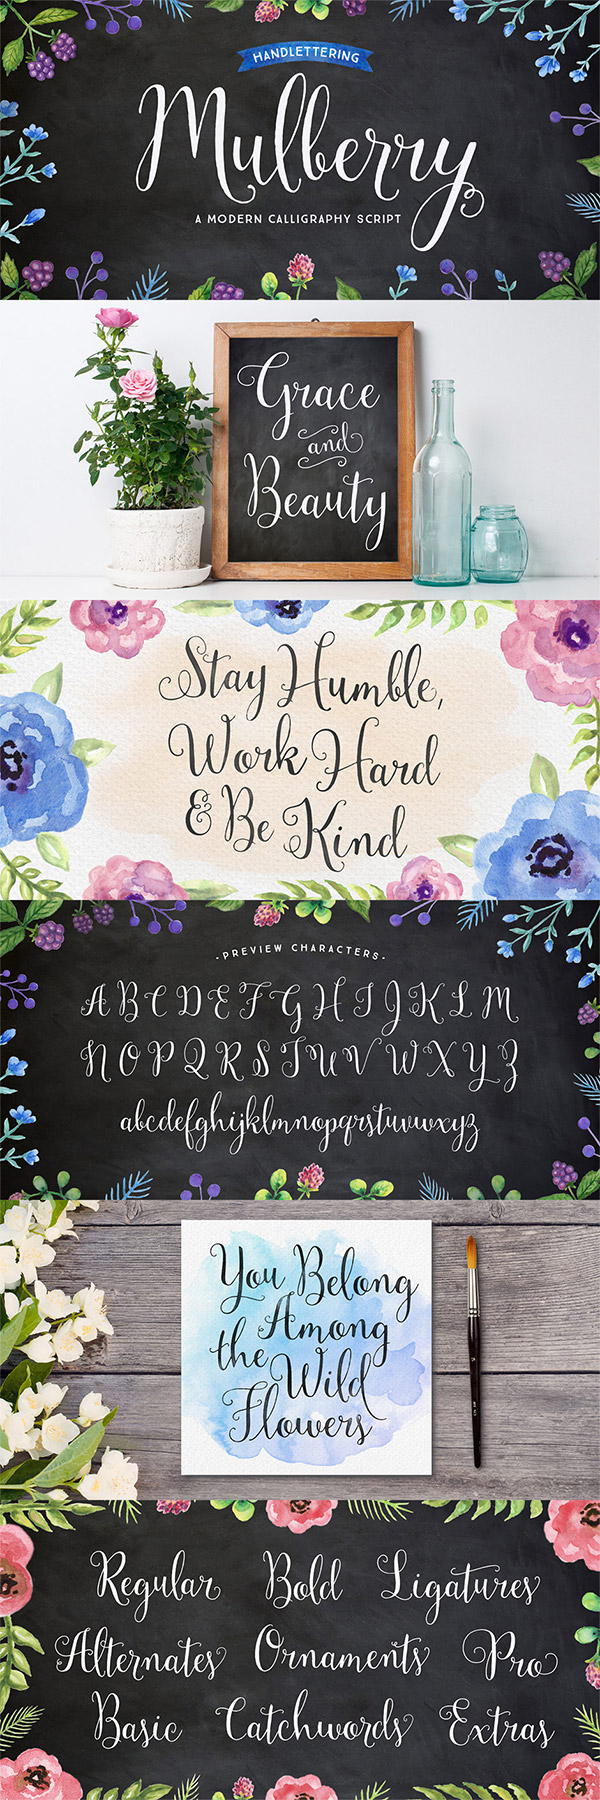 Mulberry font preview